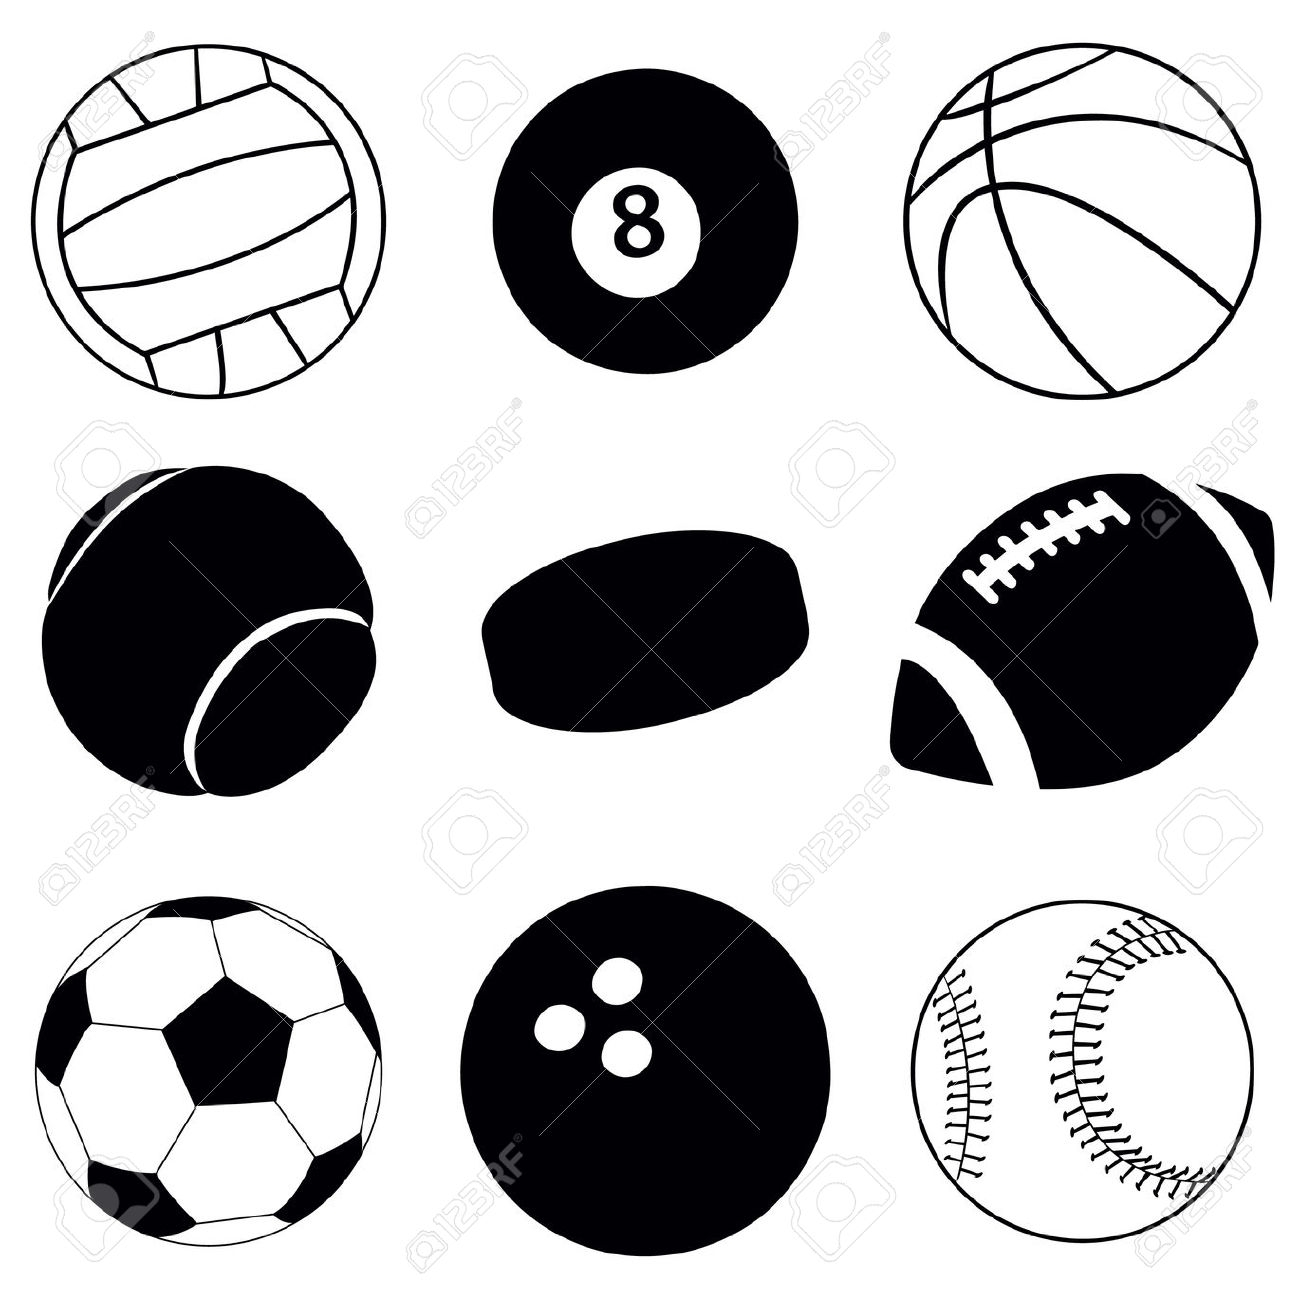 Sports clipart black and white 8 » Clipart Station.